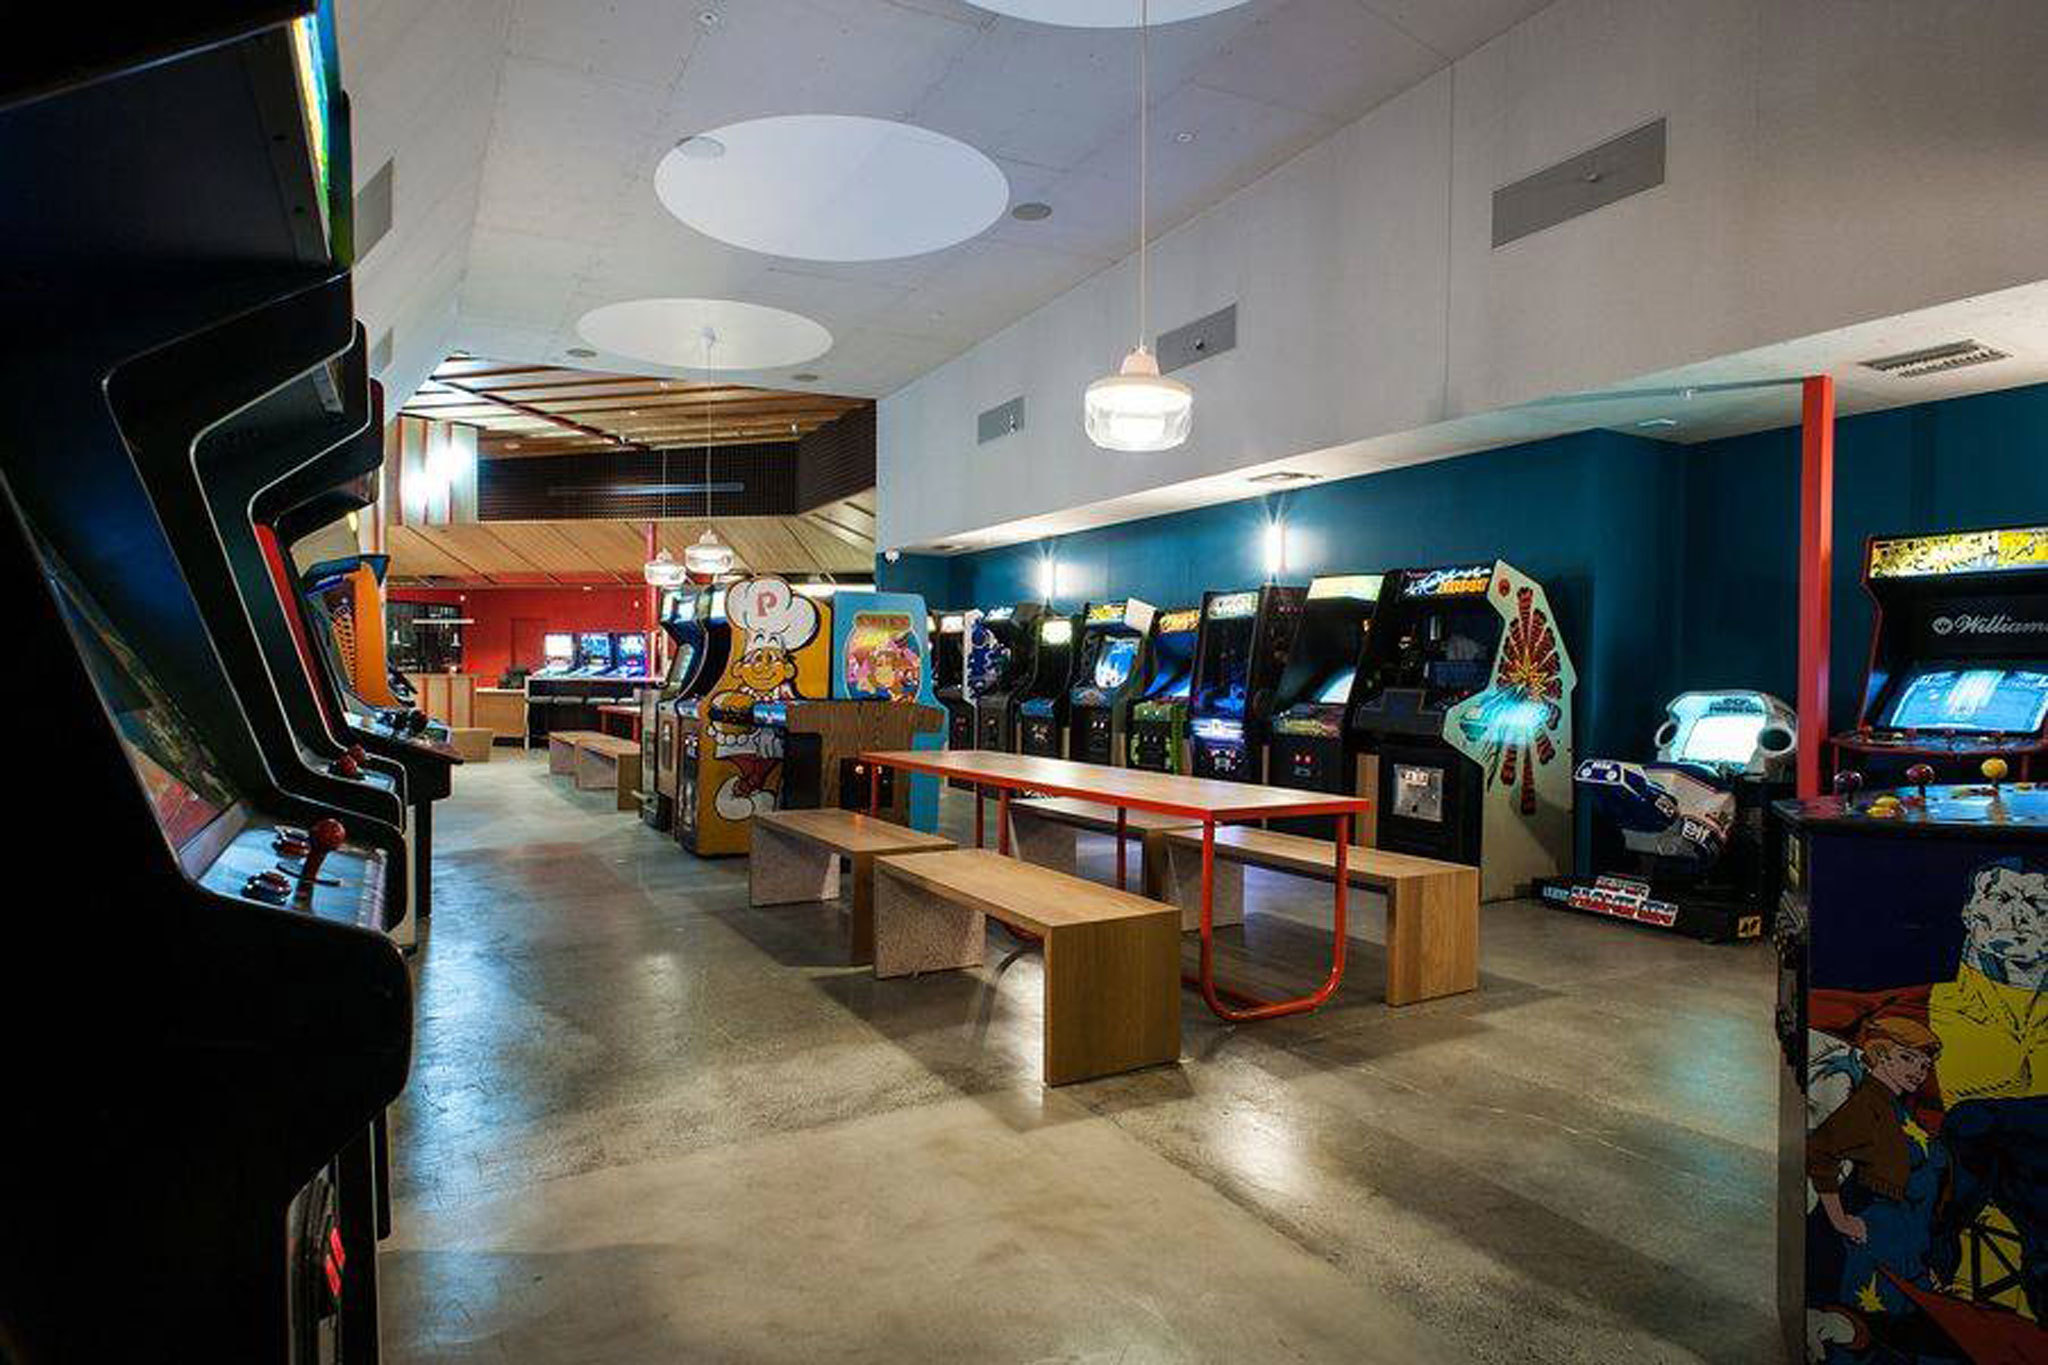 Reasons we love button mash the new arcade bar in echo park